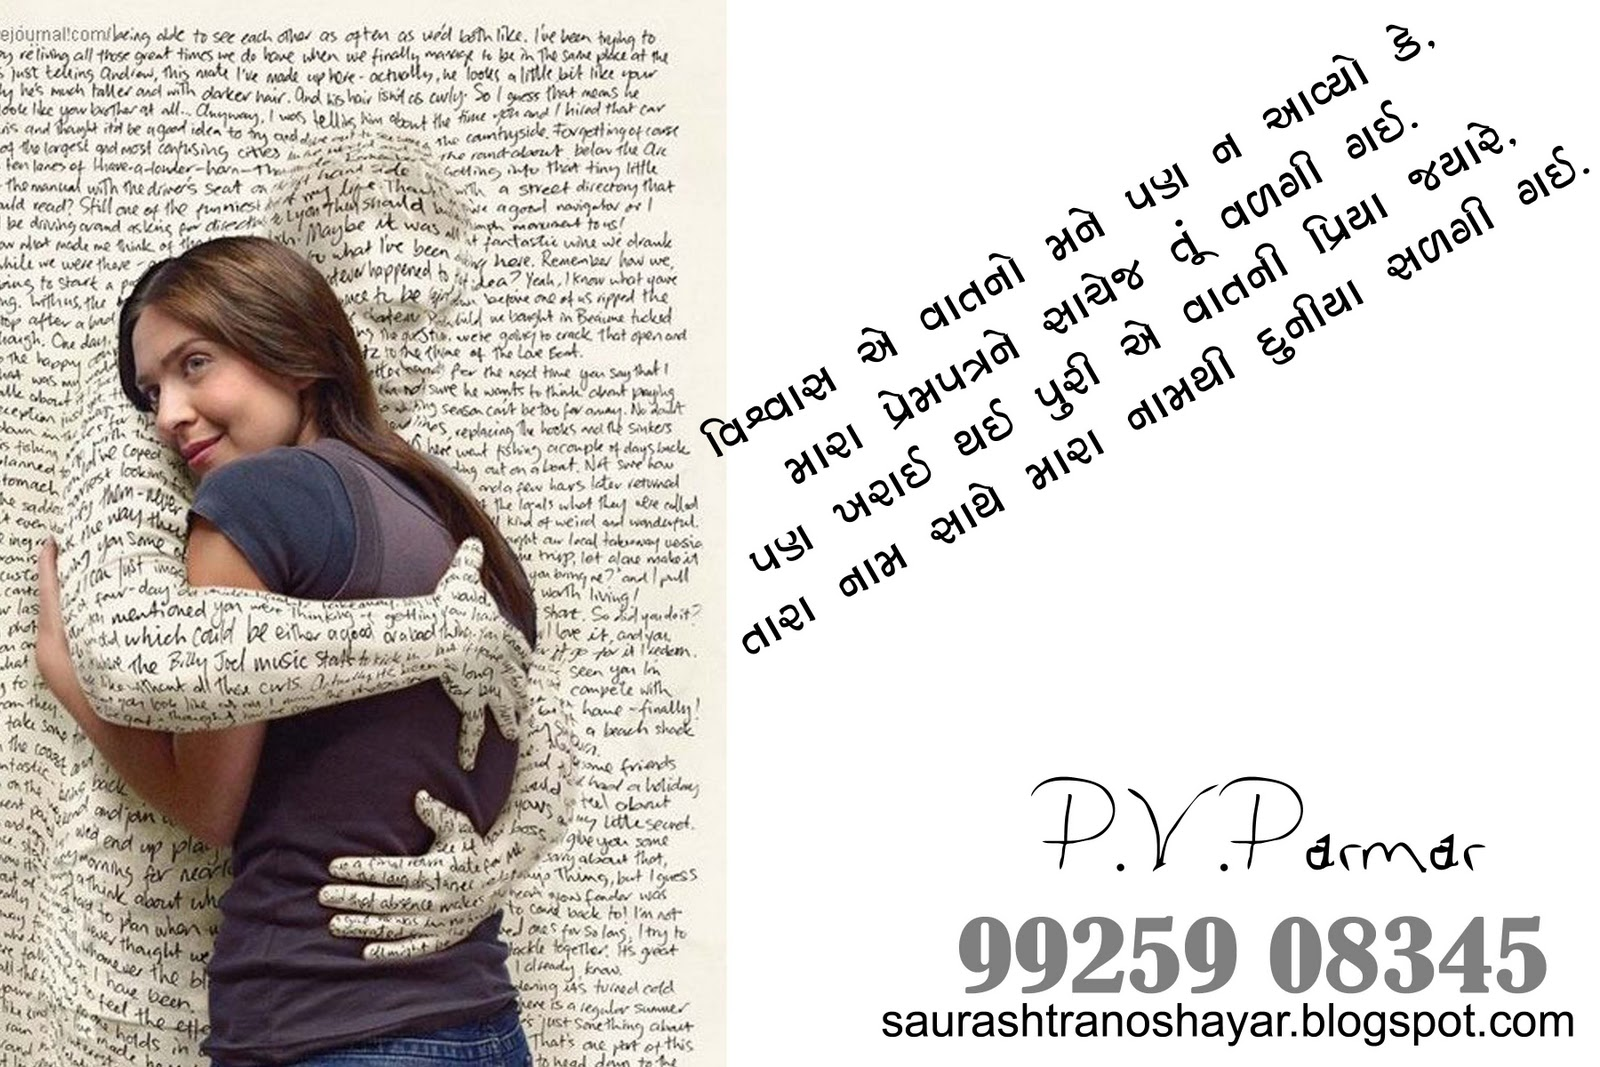 Marriage love letter gujrati newsinvitation gujarati love letter vishwas a vaat no mane pan na aavyo ke mara prempatra ne sachej thecheapjerseys Gallery